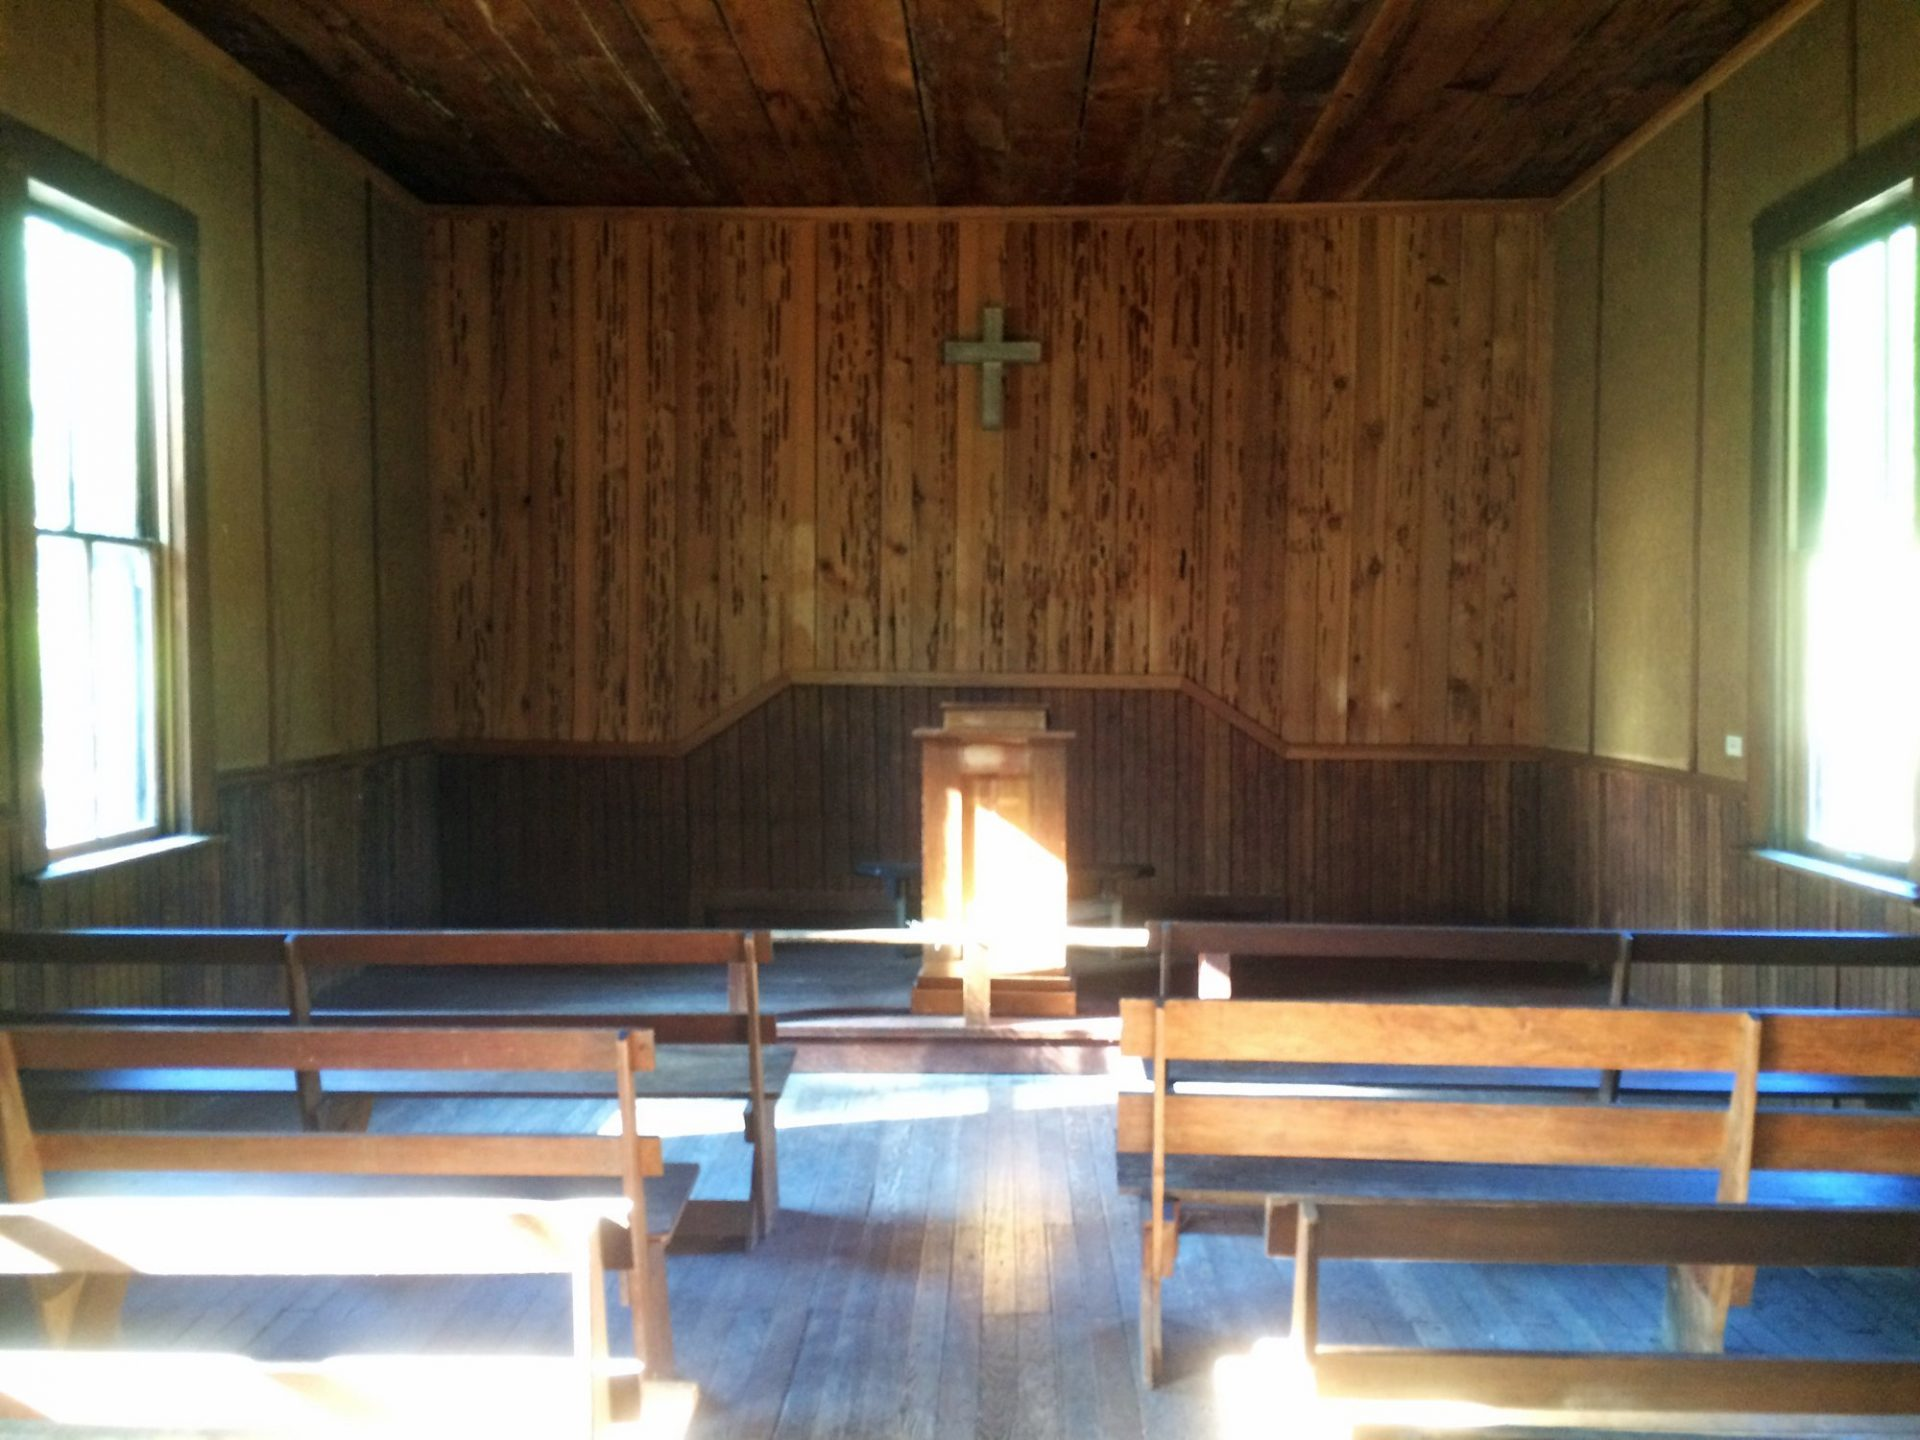 Inside the church at Golden, Oregon